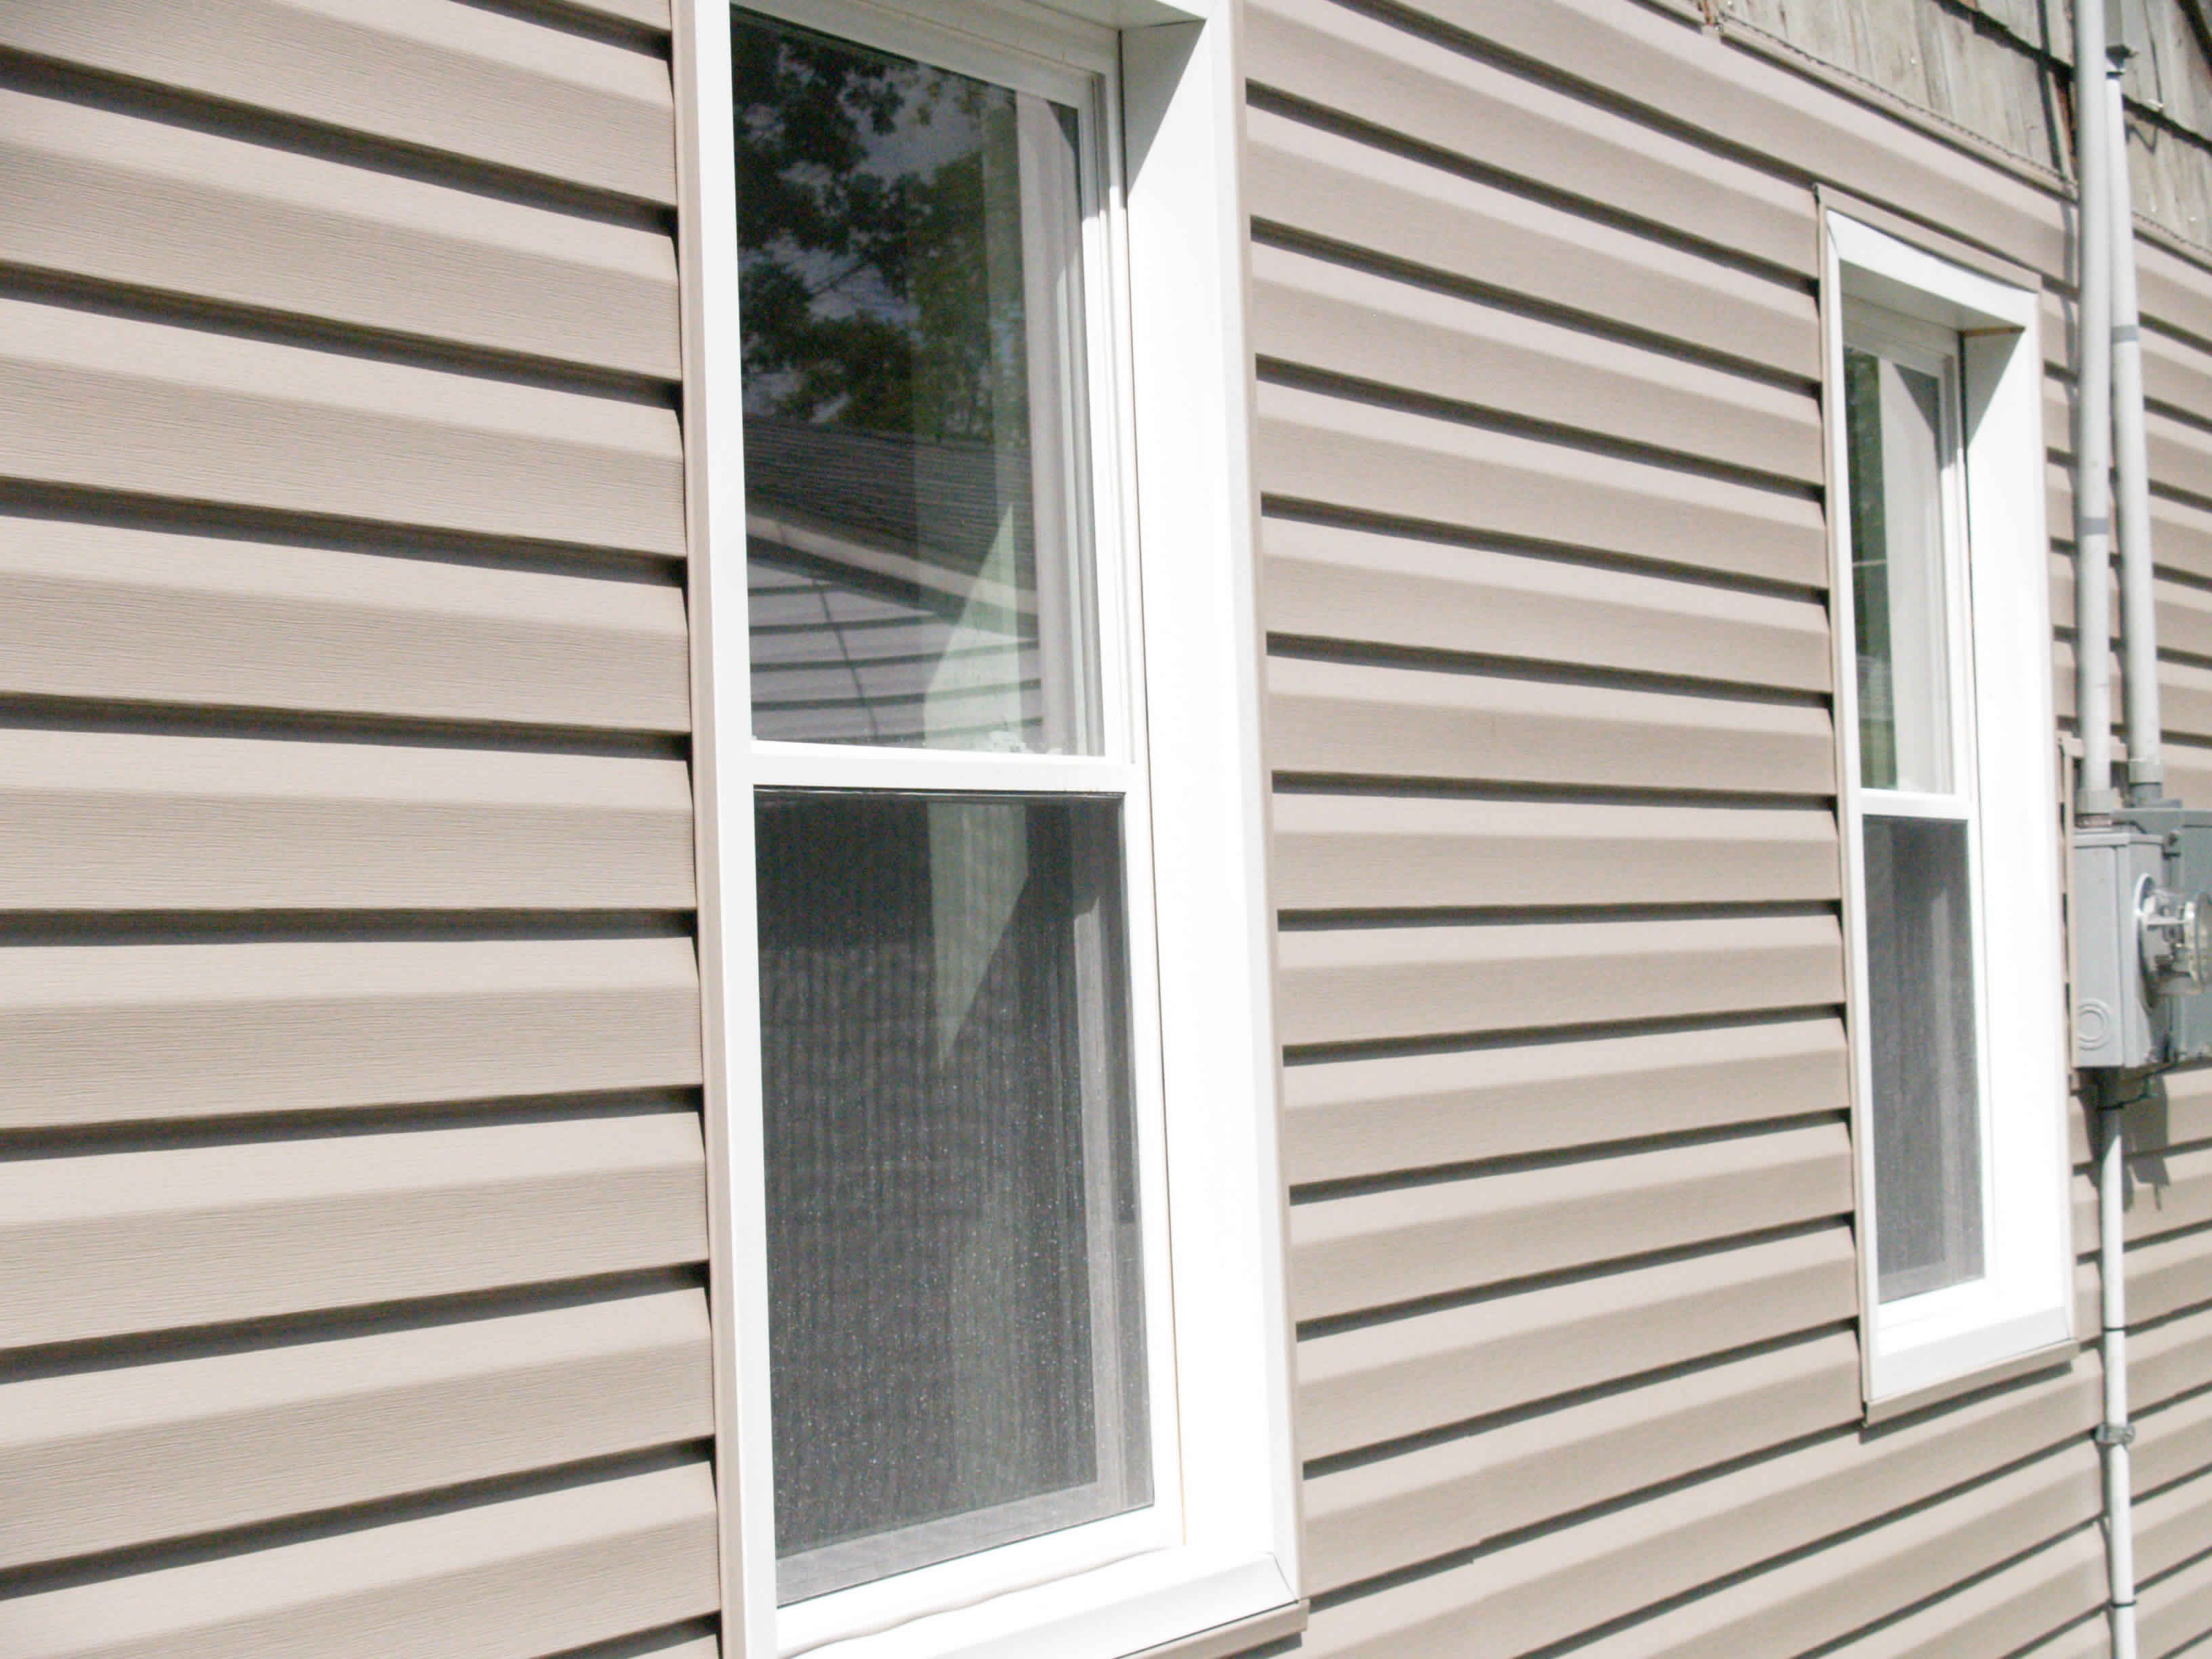 Nolan contracting fort wayne and northeast indiana for Replacing windows